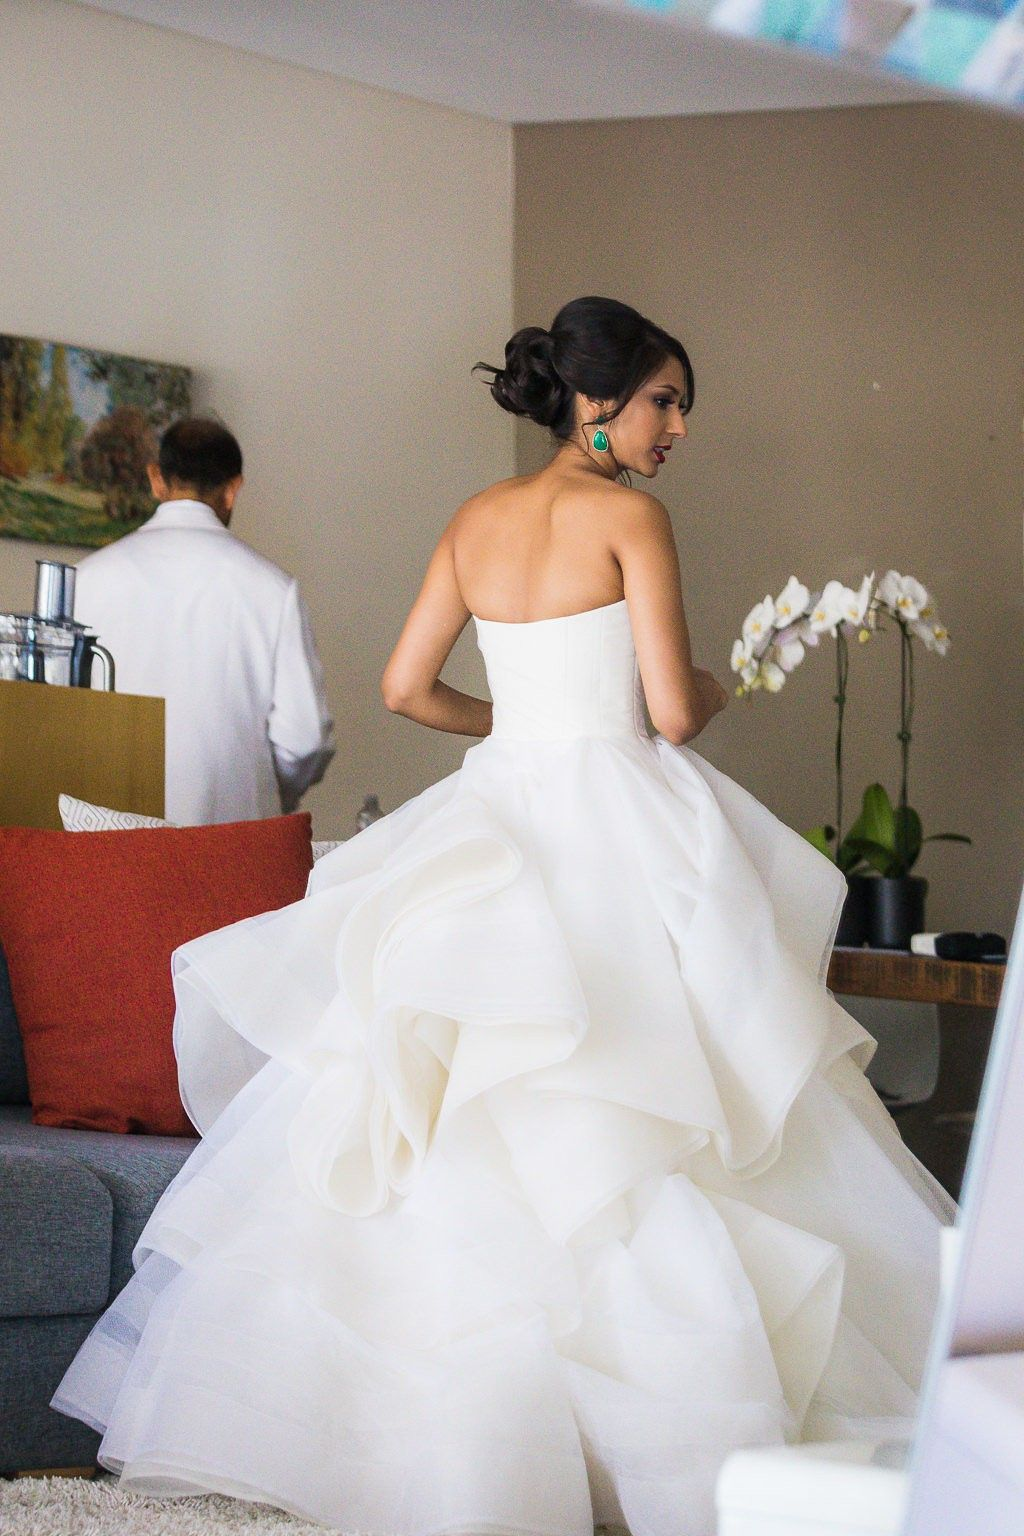 10+ Wedding dress dry cleaning cost near me info